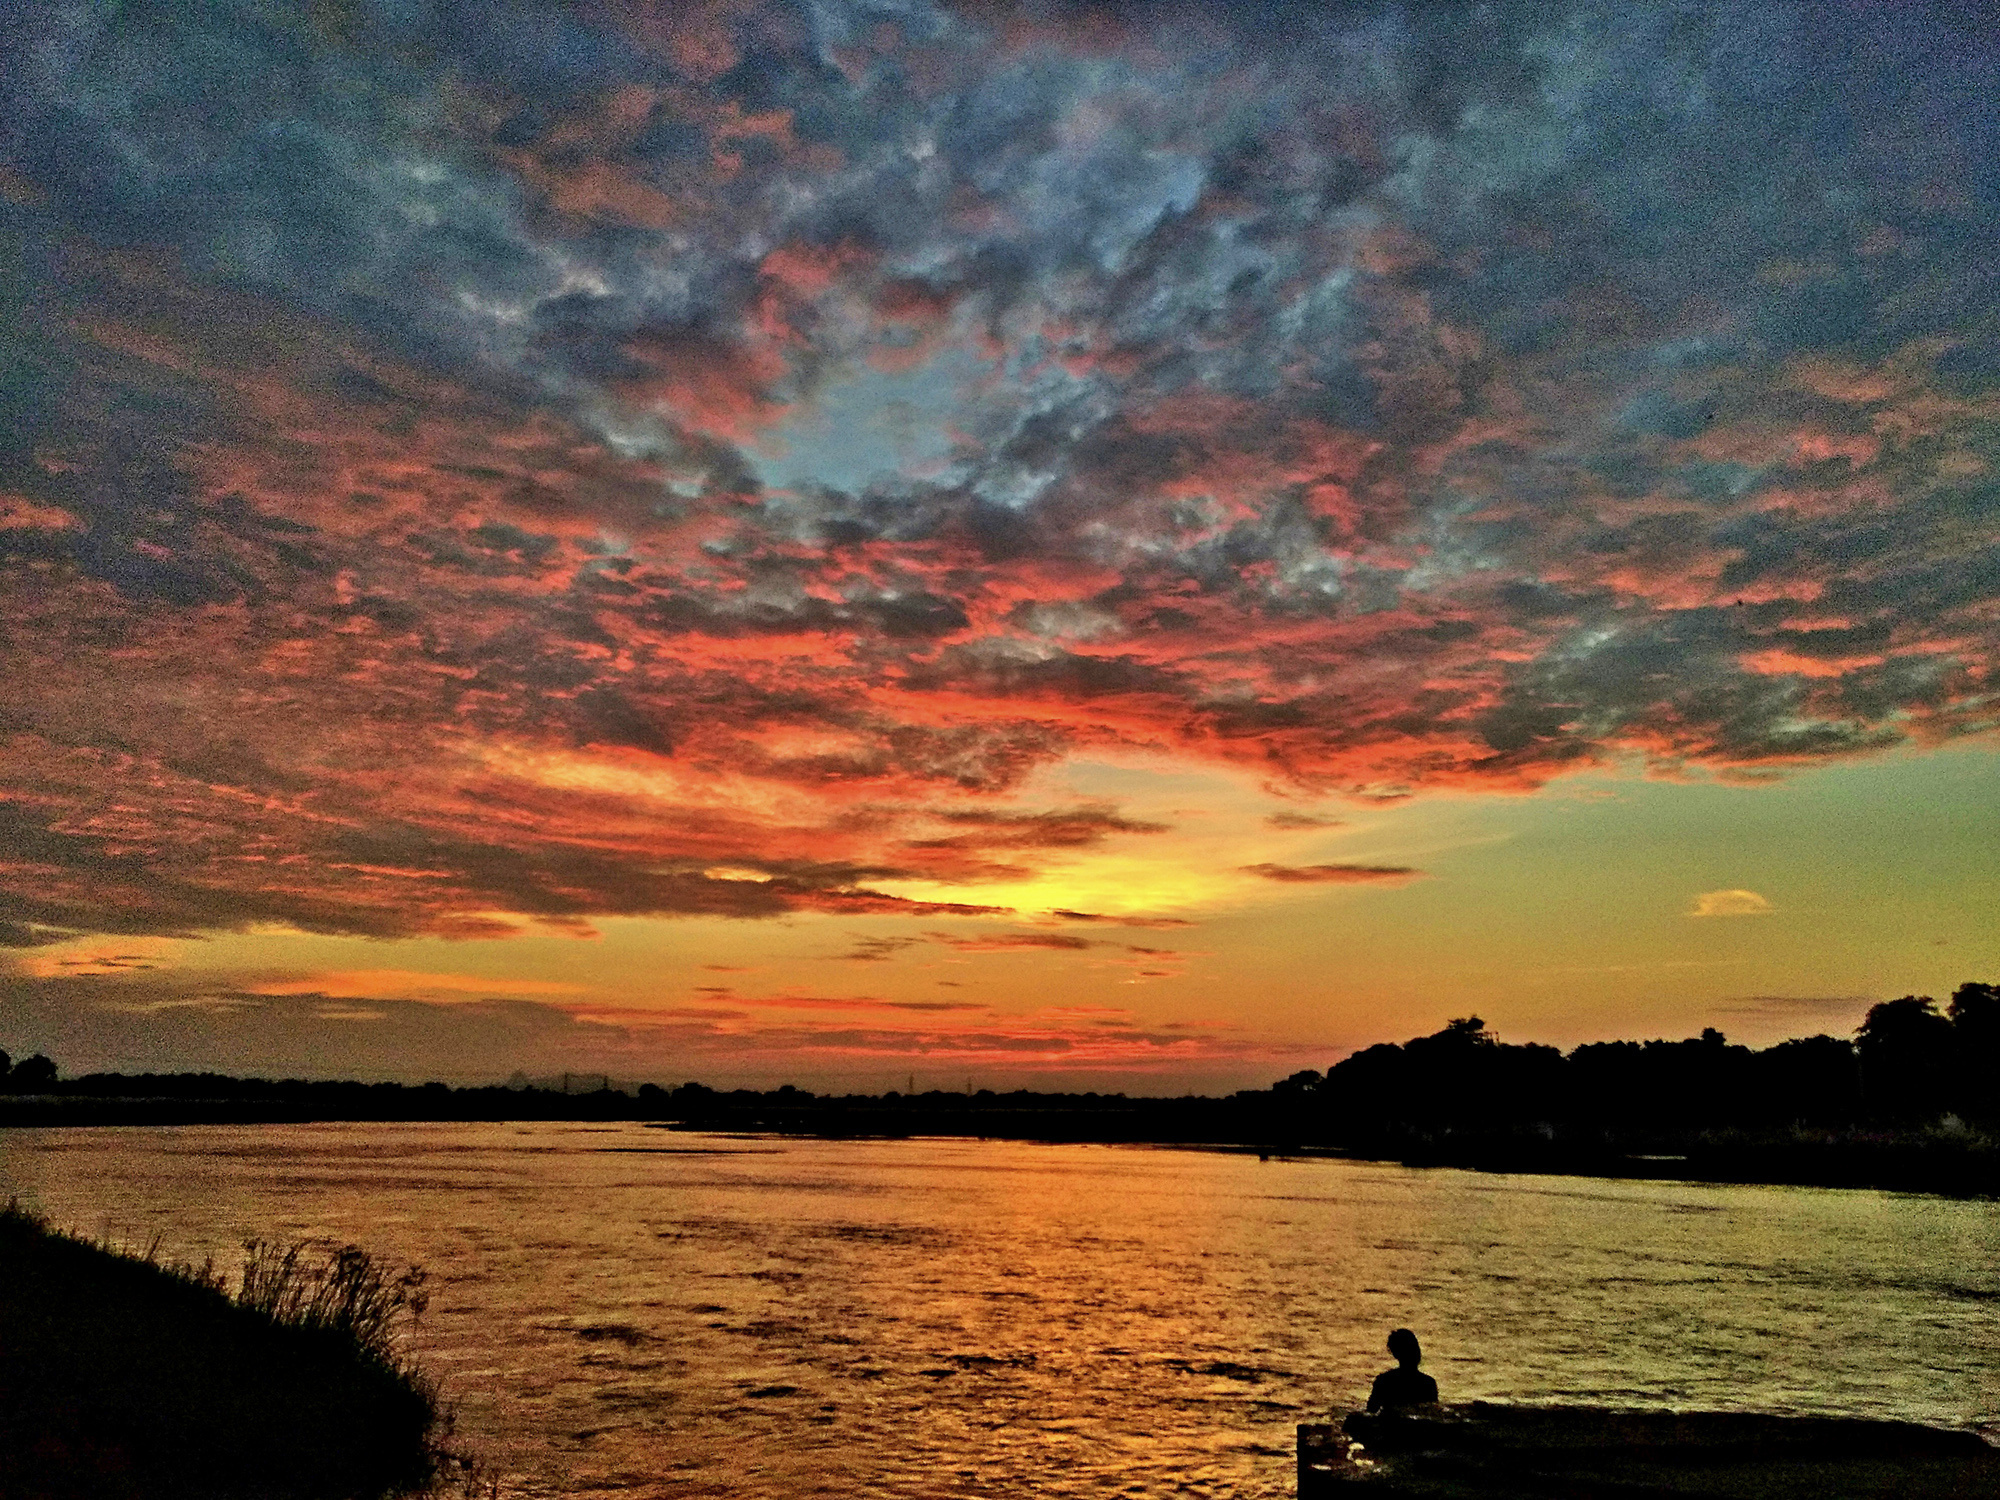 One sunset that I will remember for a long time.Clicked at Kangsabati River in Purulia district of West Bengal the sky turned blood red with a exceptional cloud formation.